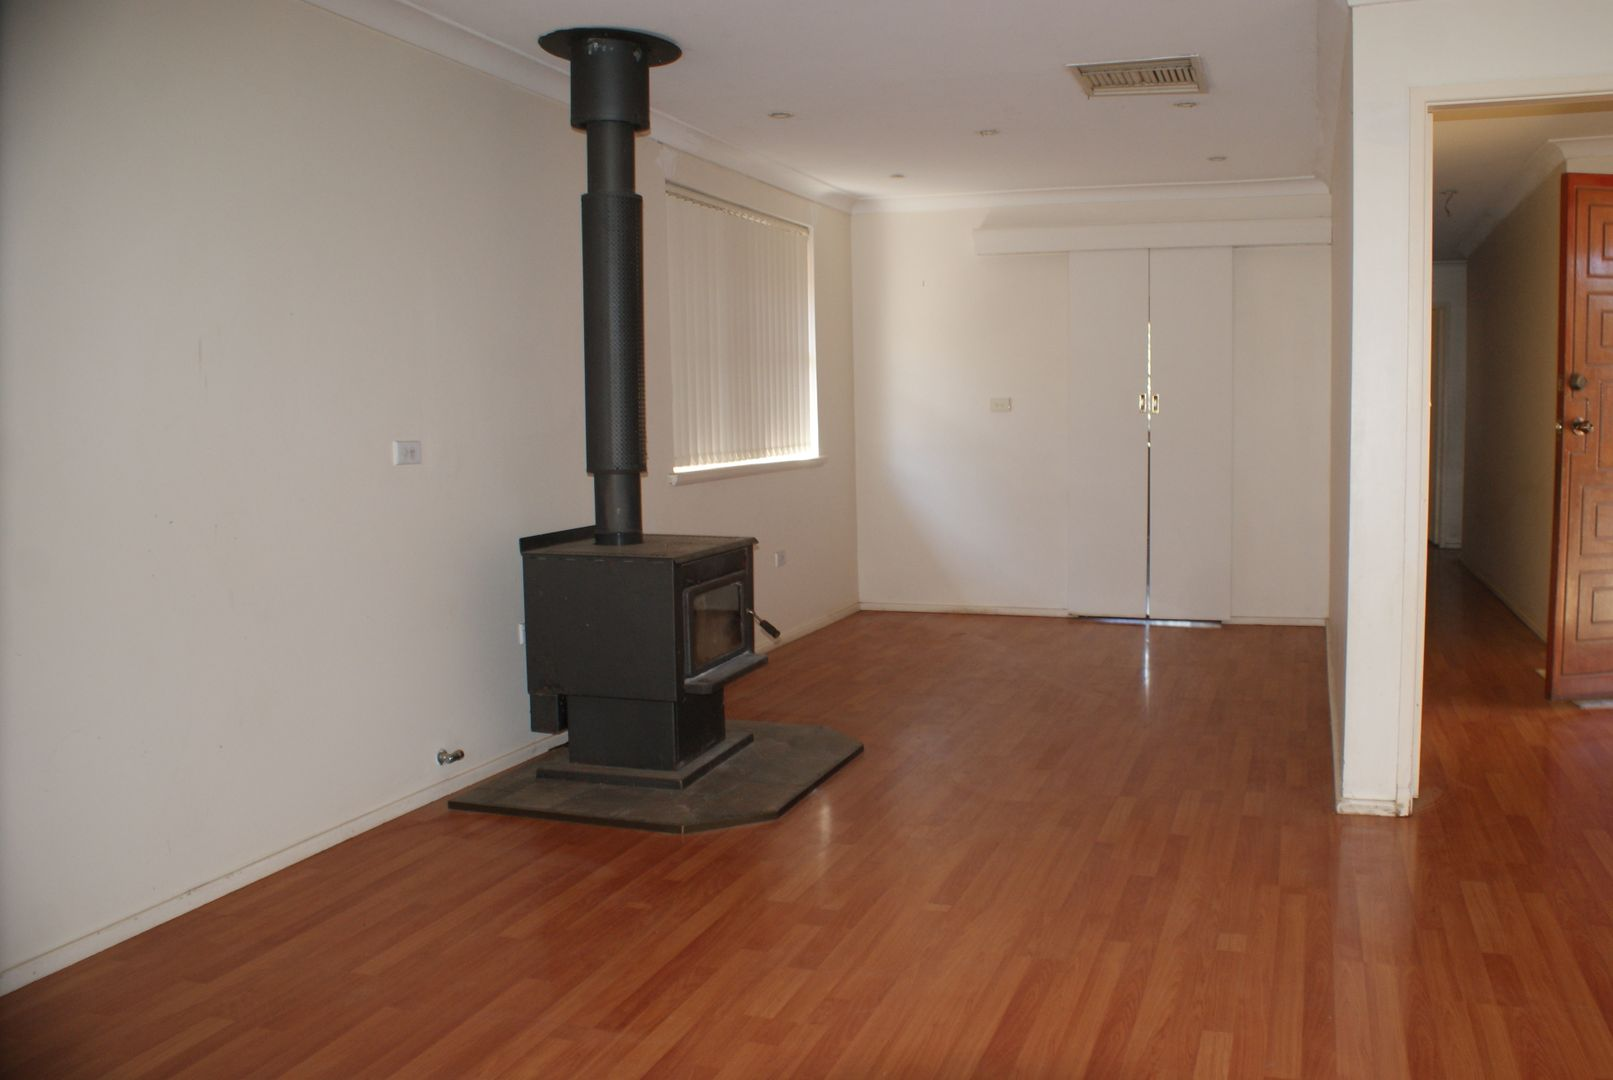 149 Hillvue Rd, South Tamworth NSW 2340, Image 0